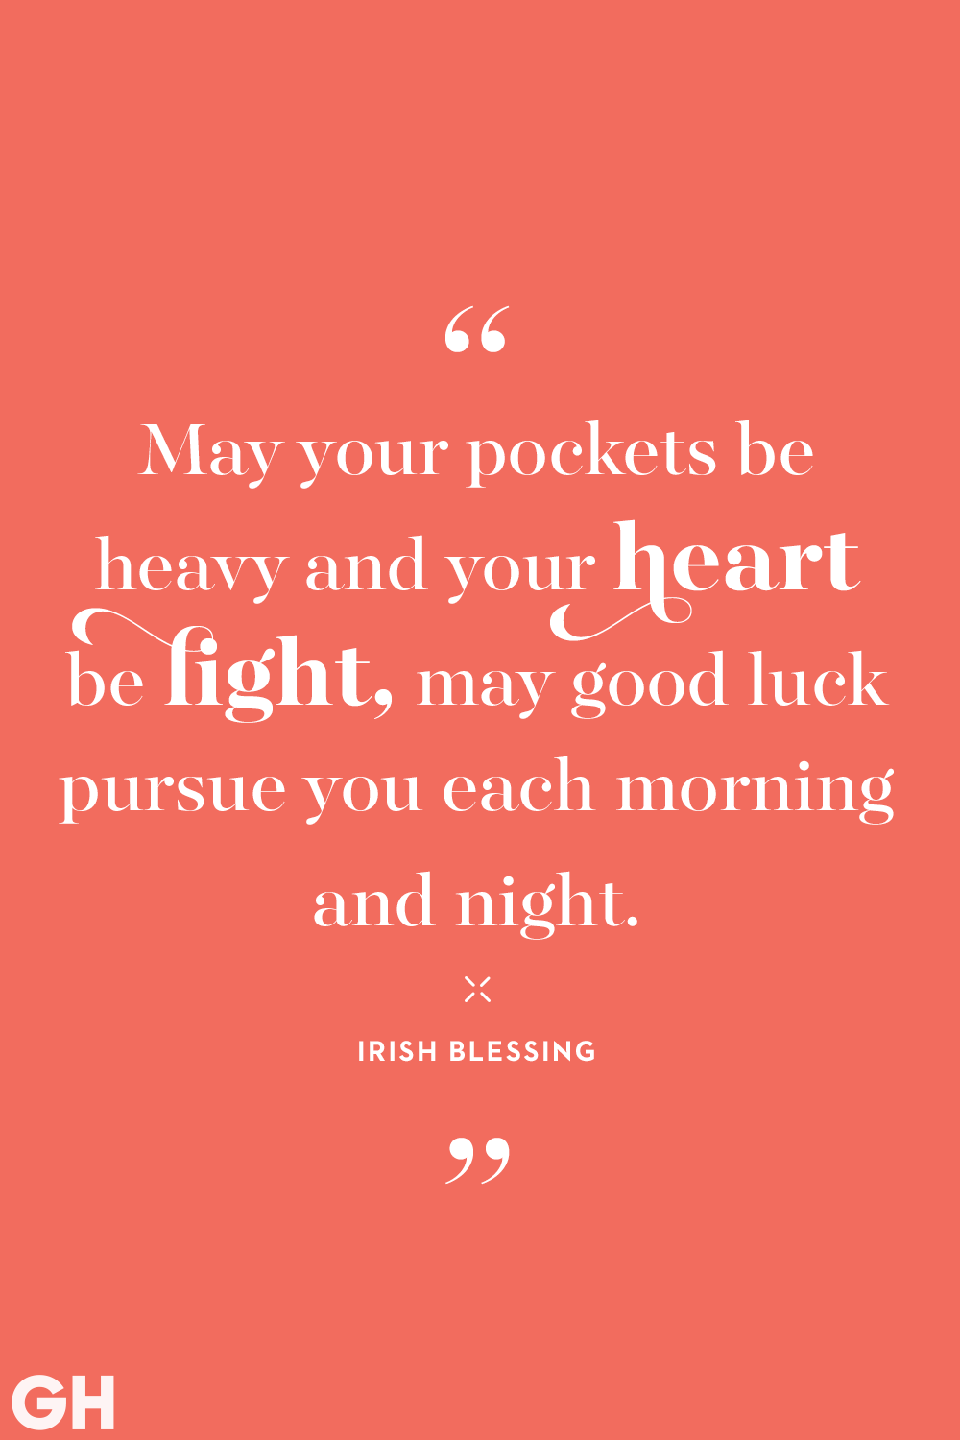 <p>May your pockets be heavy and your heart be light, may good luck pursue you each morning and night.</p>